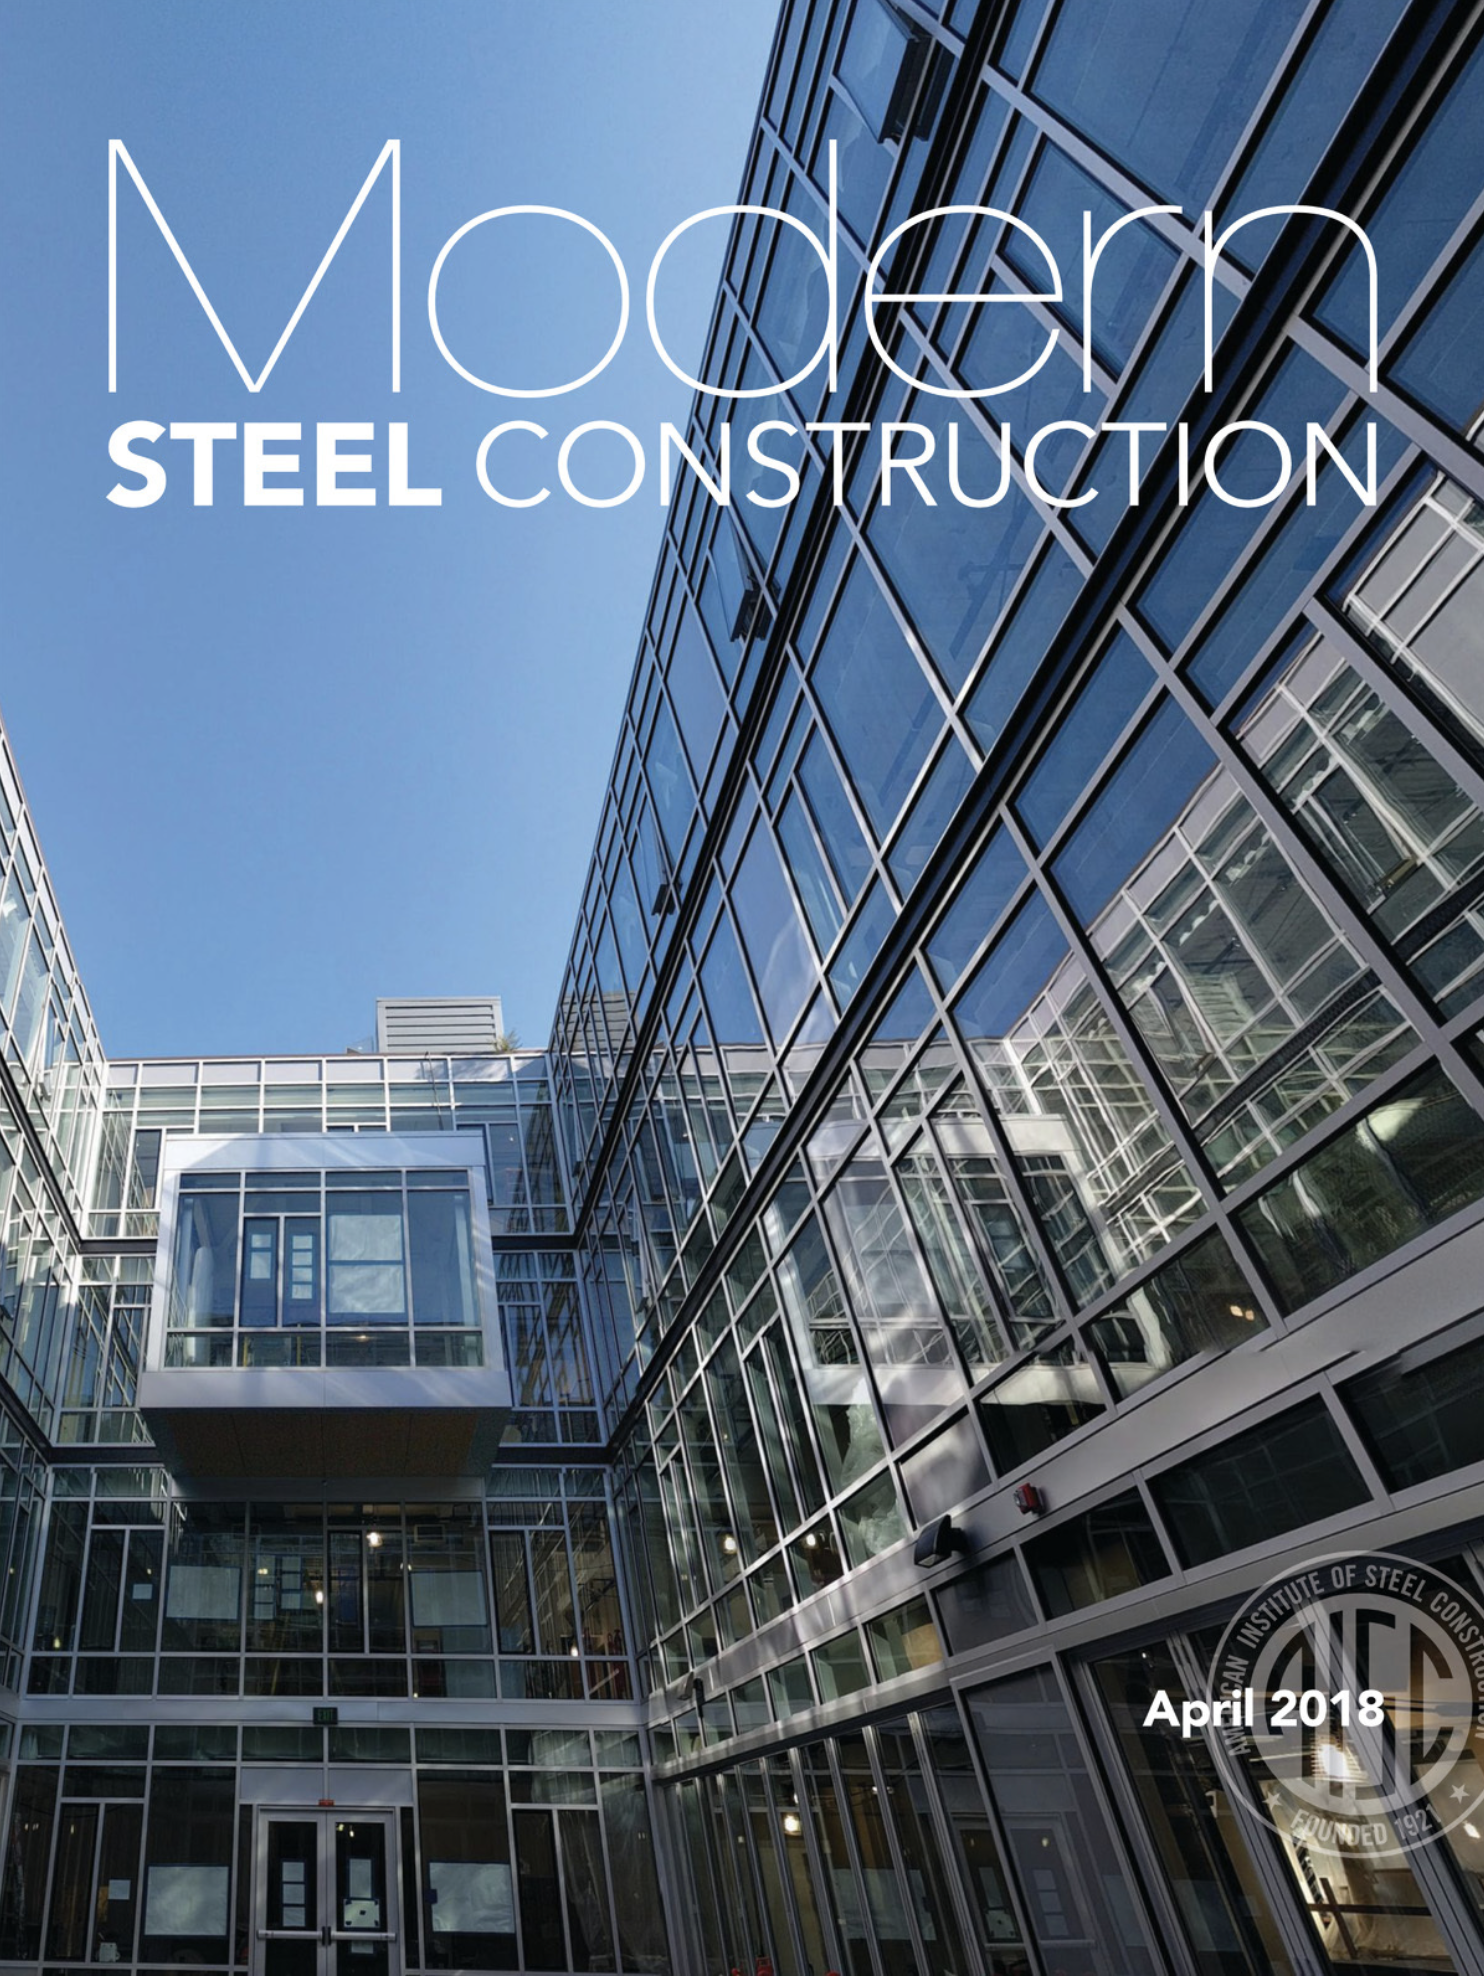 modernsteelconstructioncover